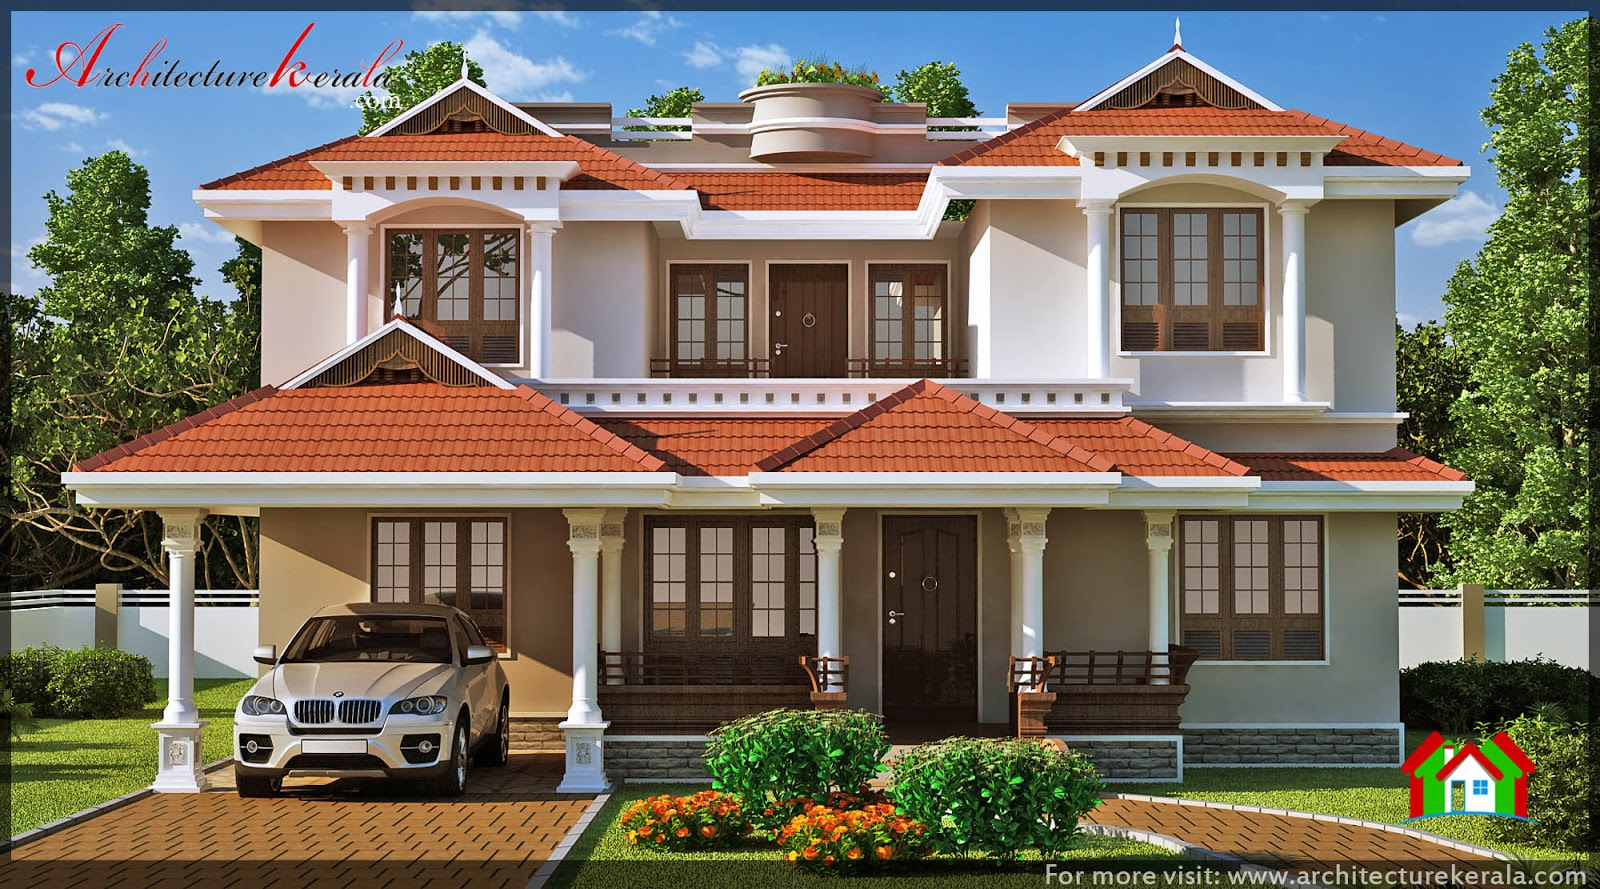 Traditional kerala house elevation architecture kerala for Kerala style home designs and elevations